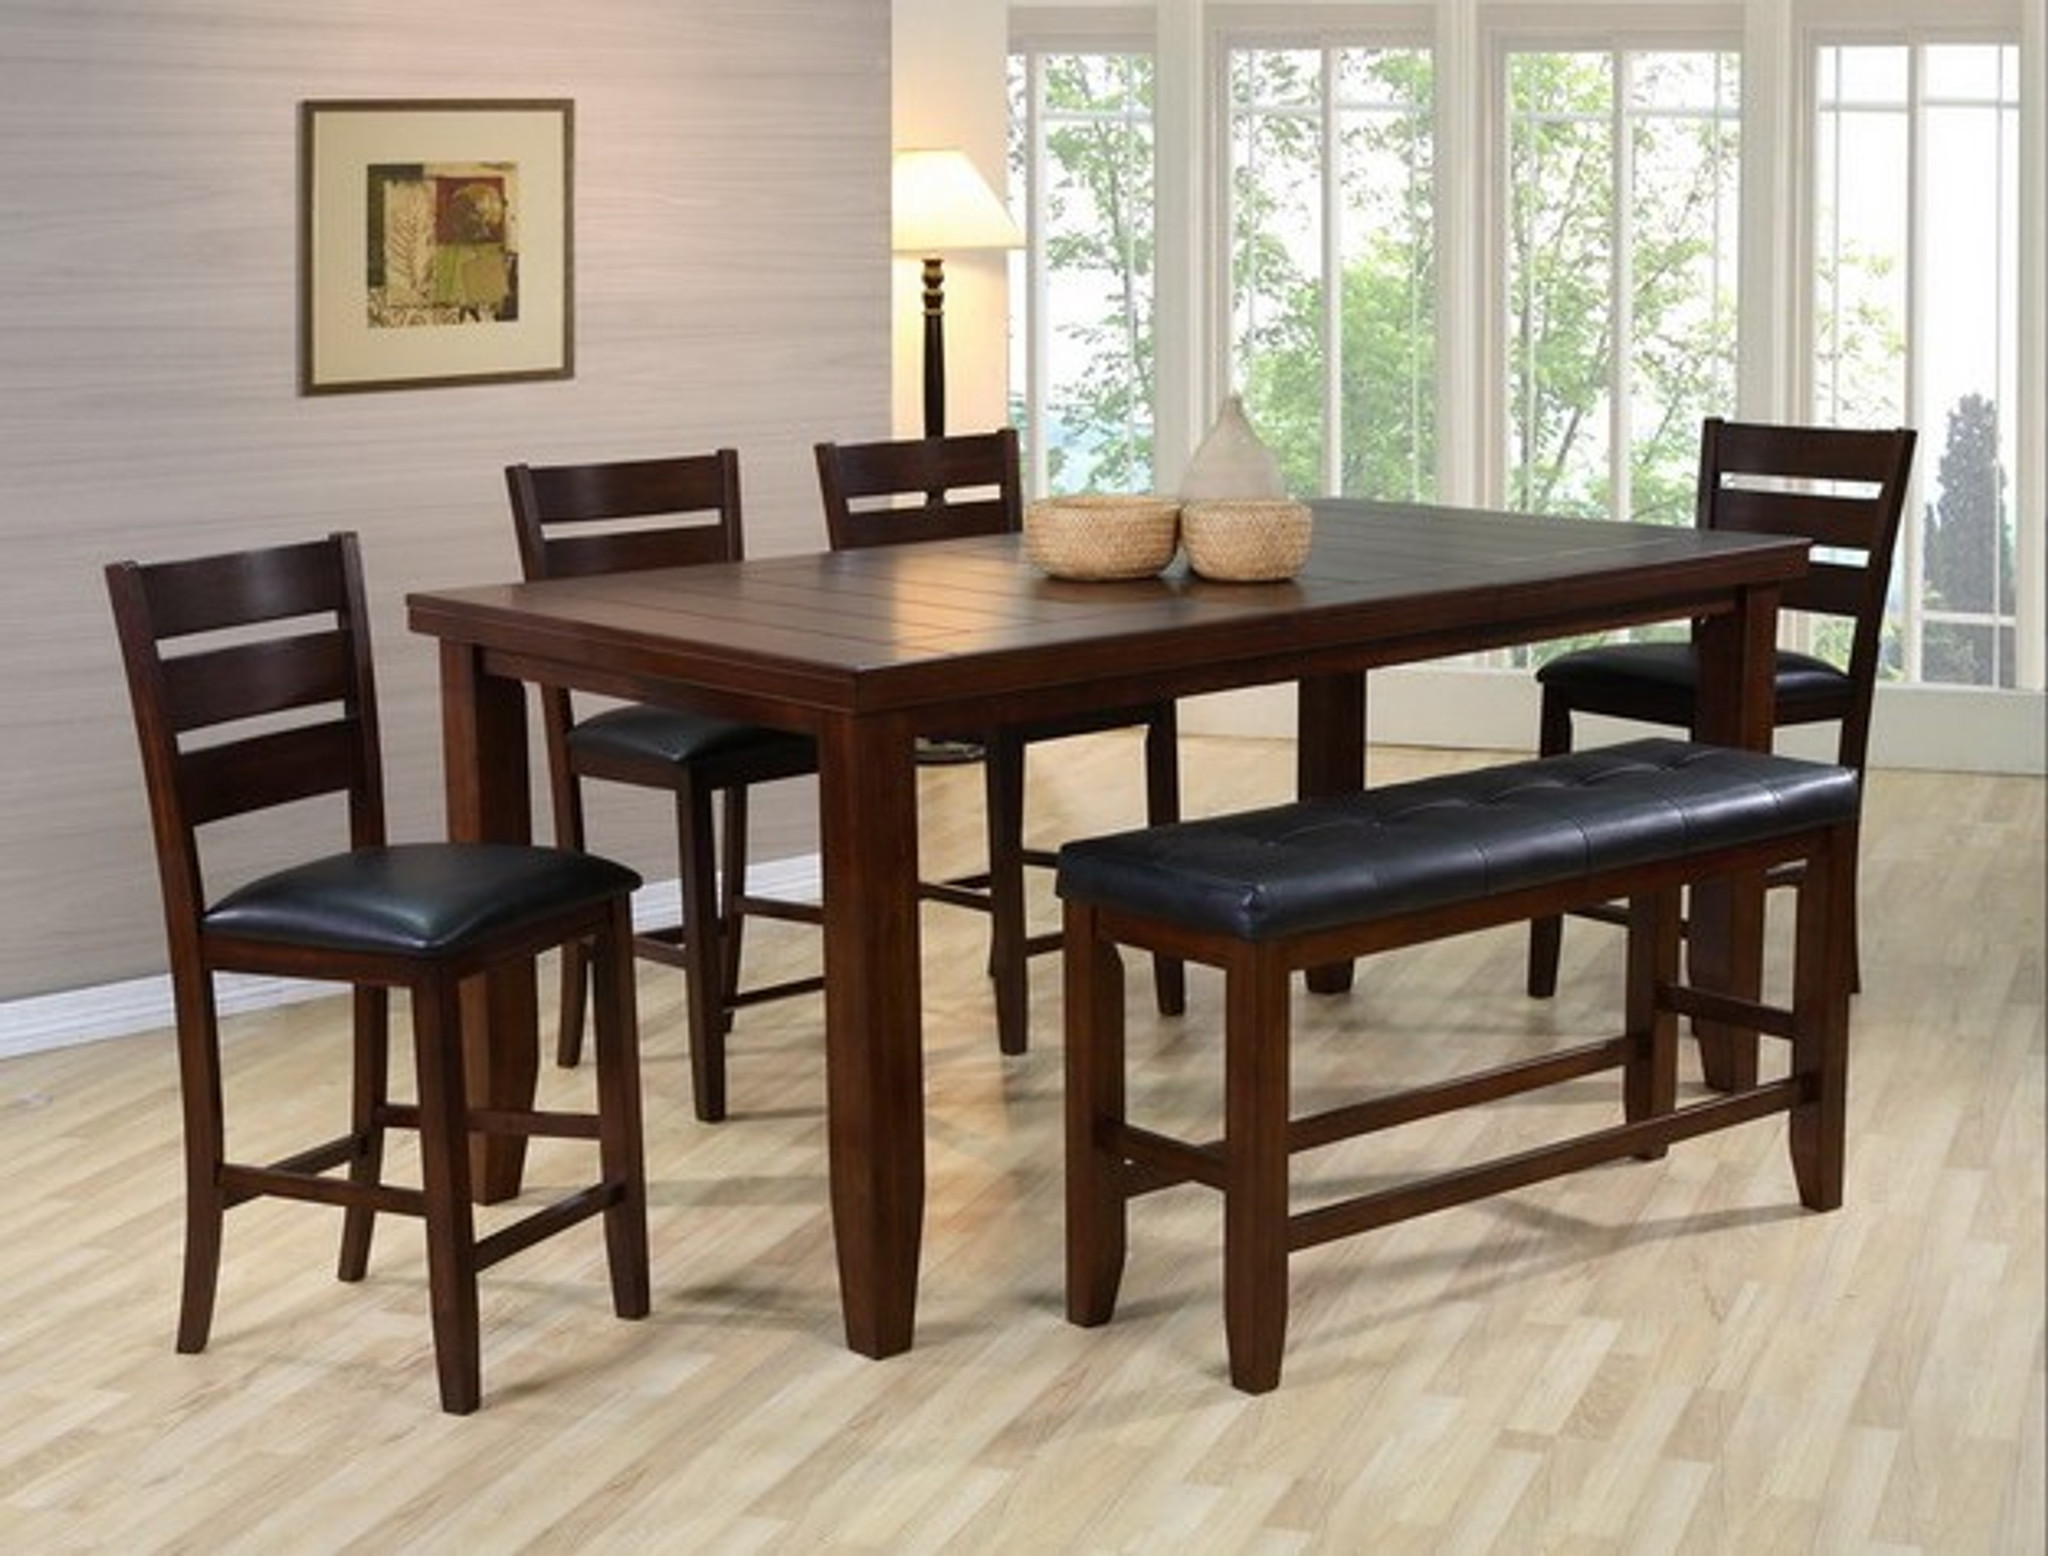 Pleasant Bardstown Counter Height Dining Table Top 5 Piece Set W Bench Beatyapartments Chair Design Images Beatyapartmentscom